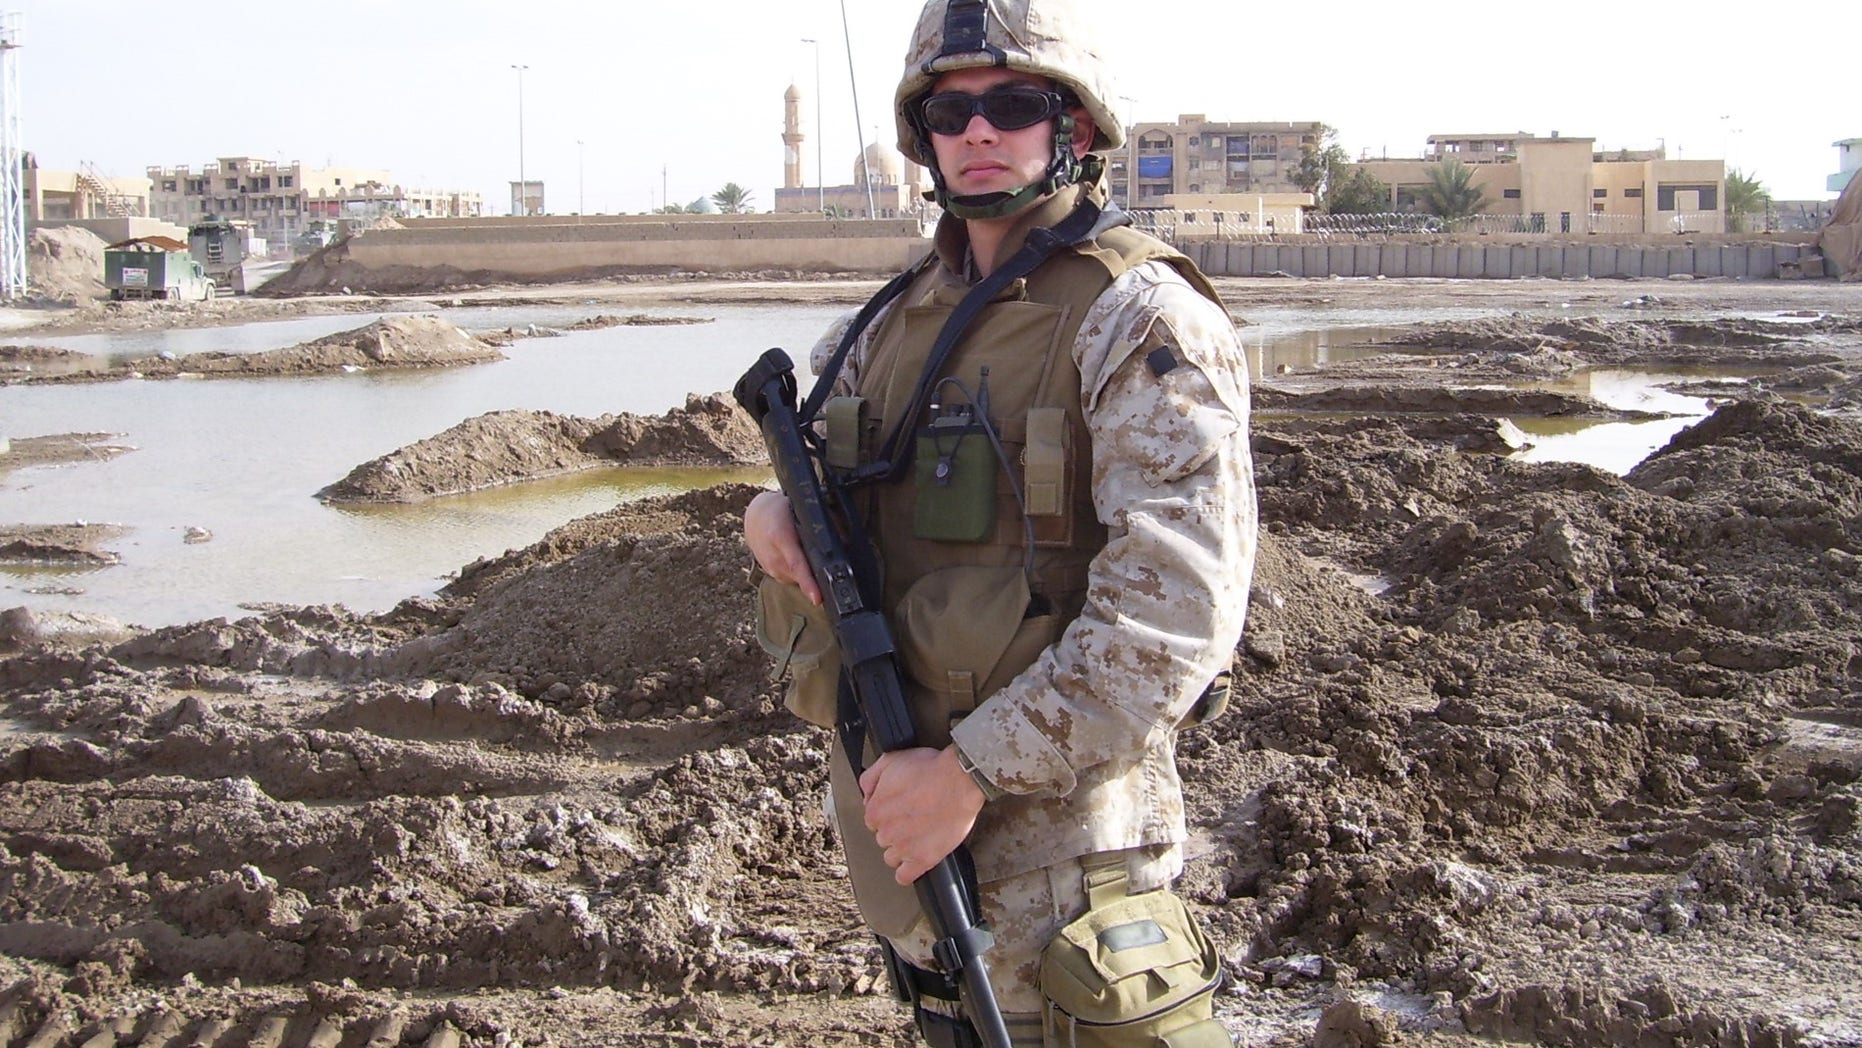 Rye Barcott during his service as a US Marine